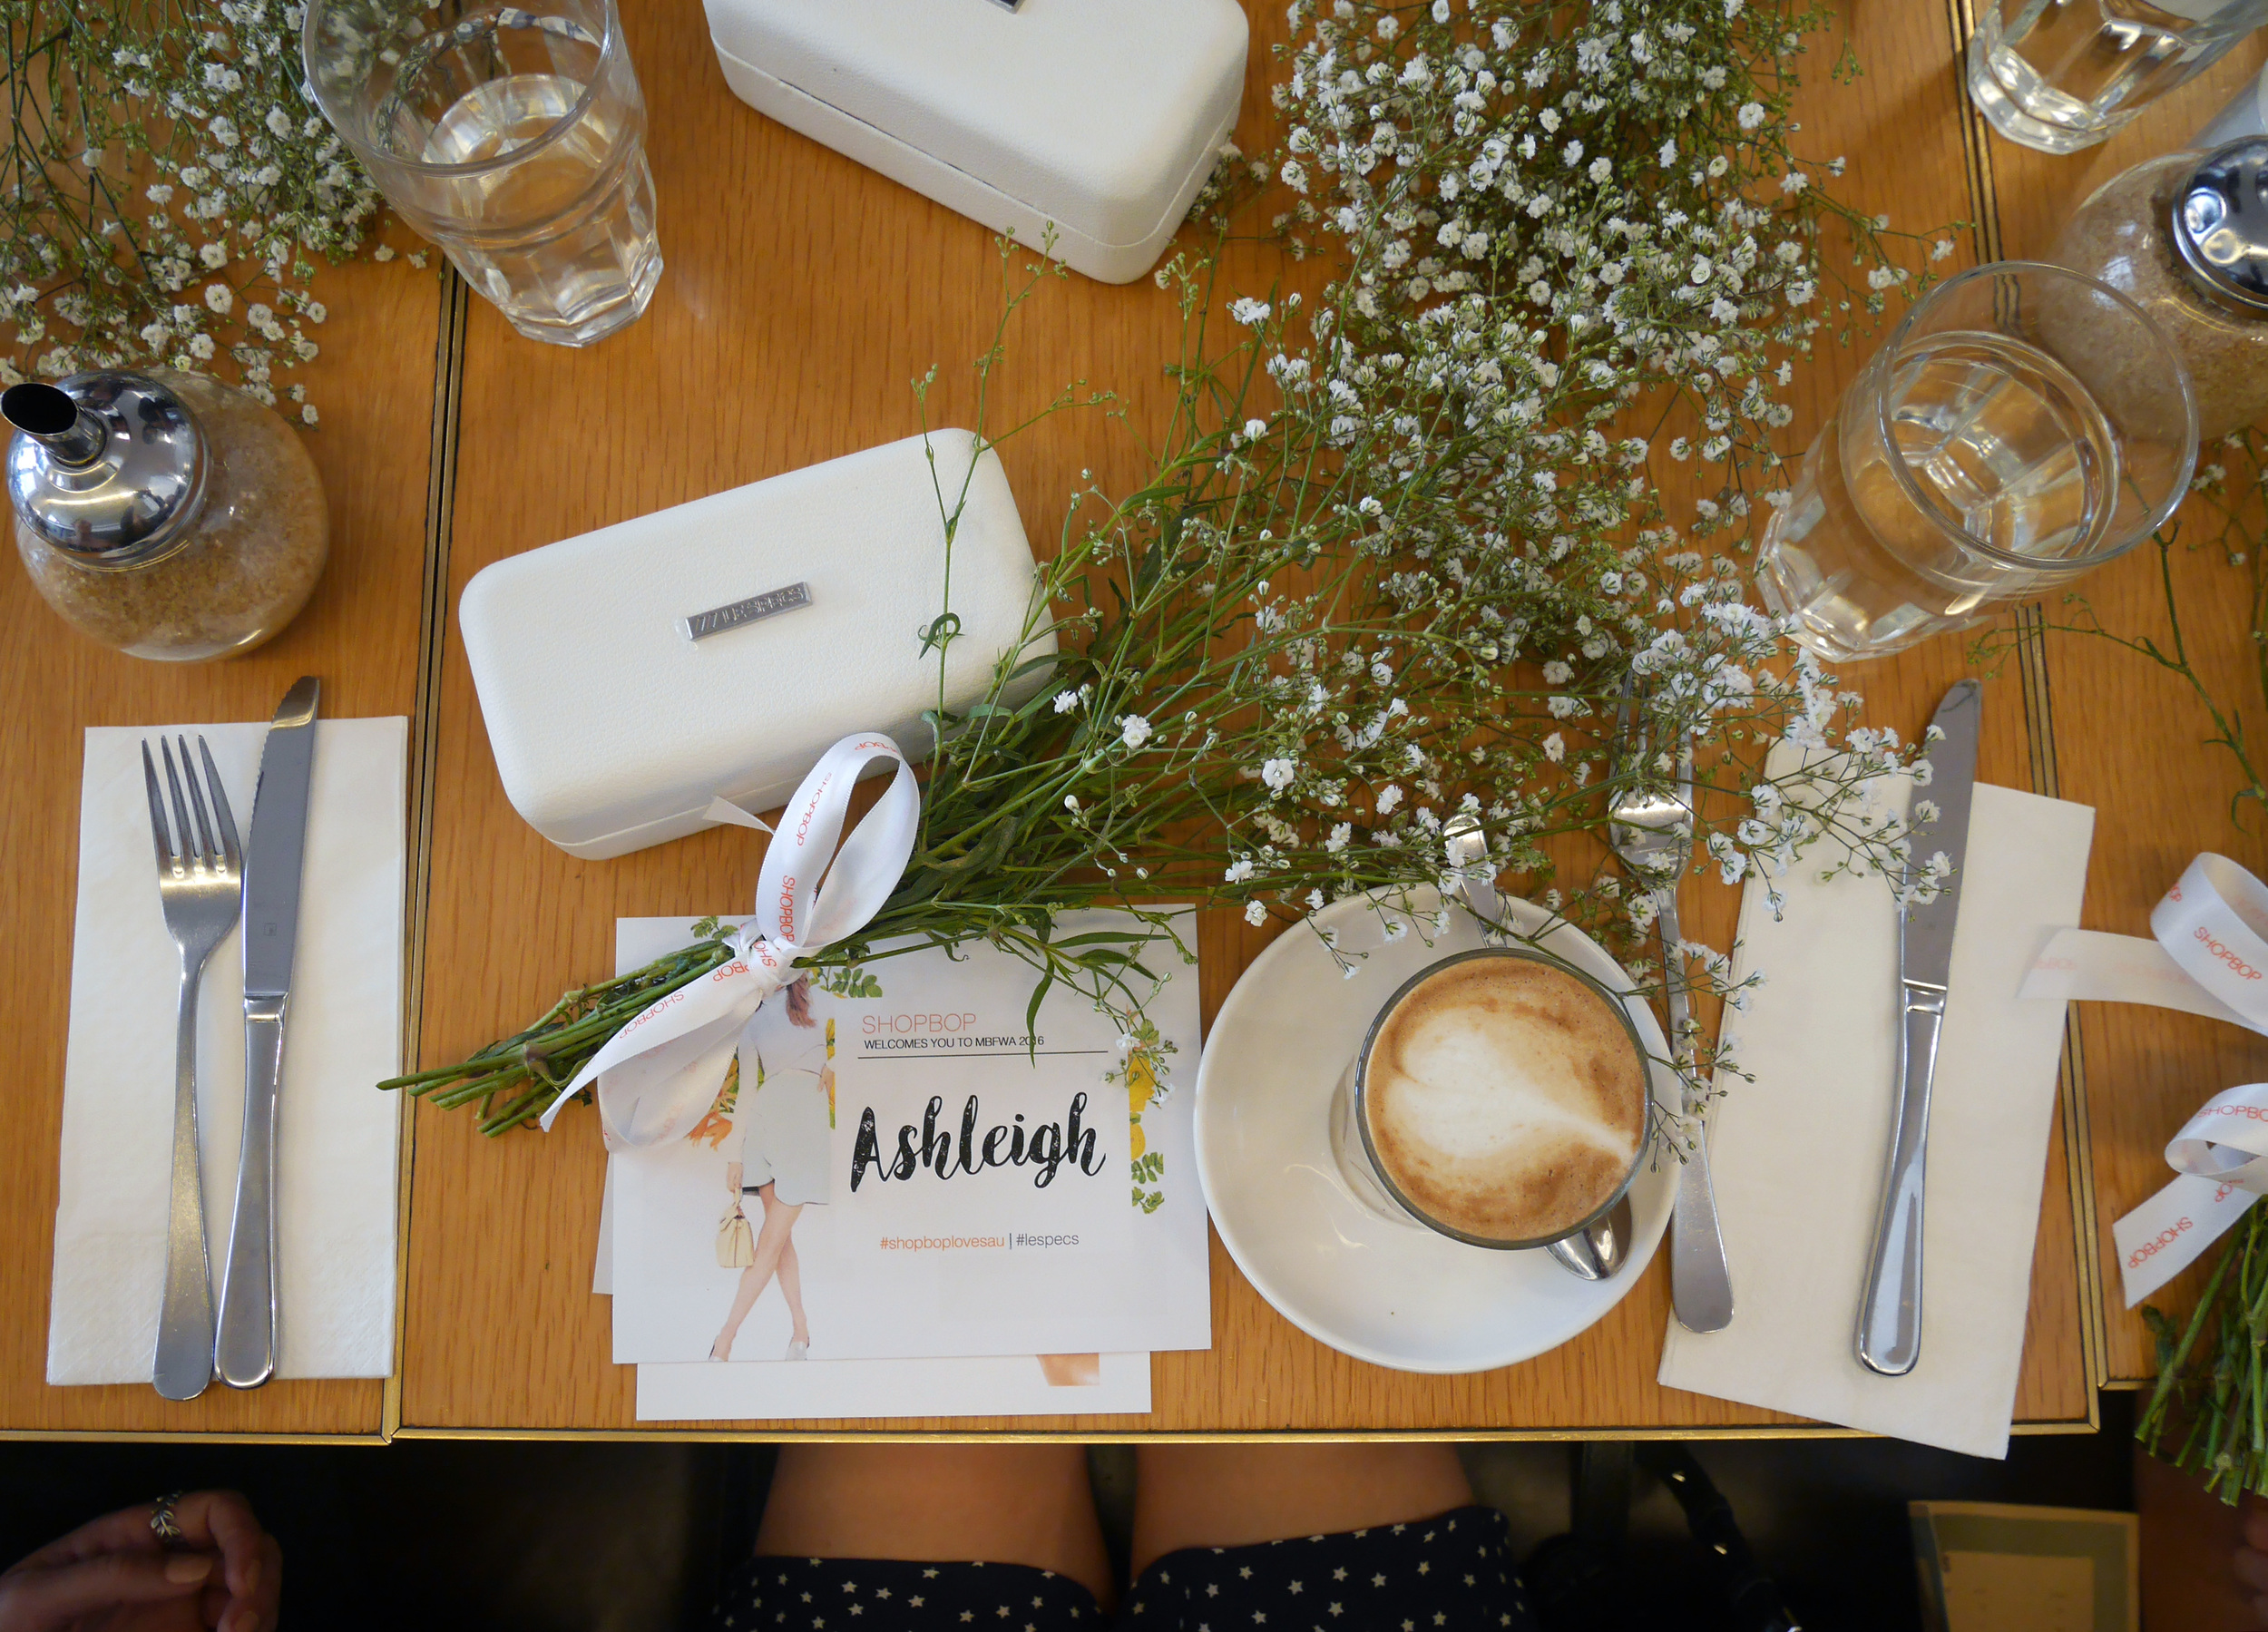 Kicking off MBFWA with brunch with team Shopbop